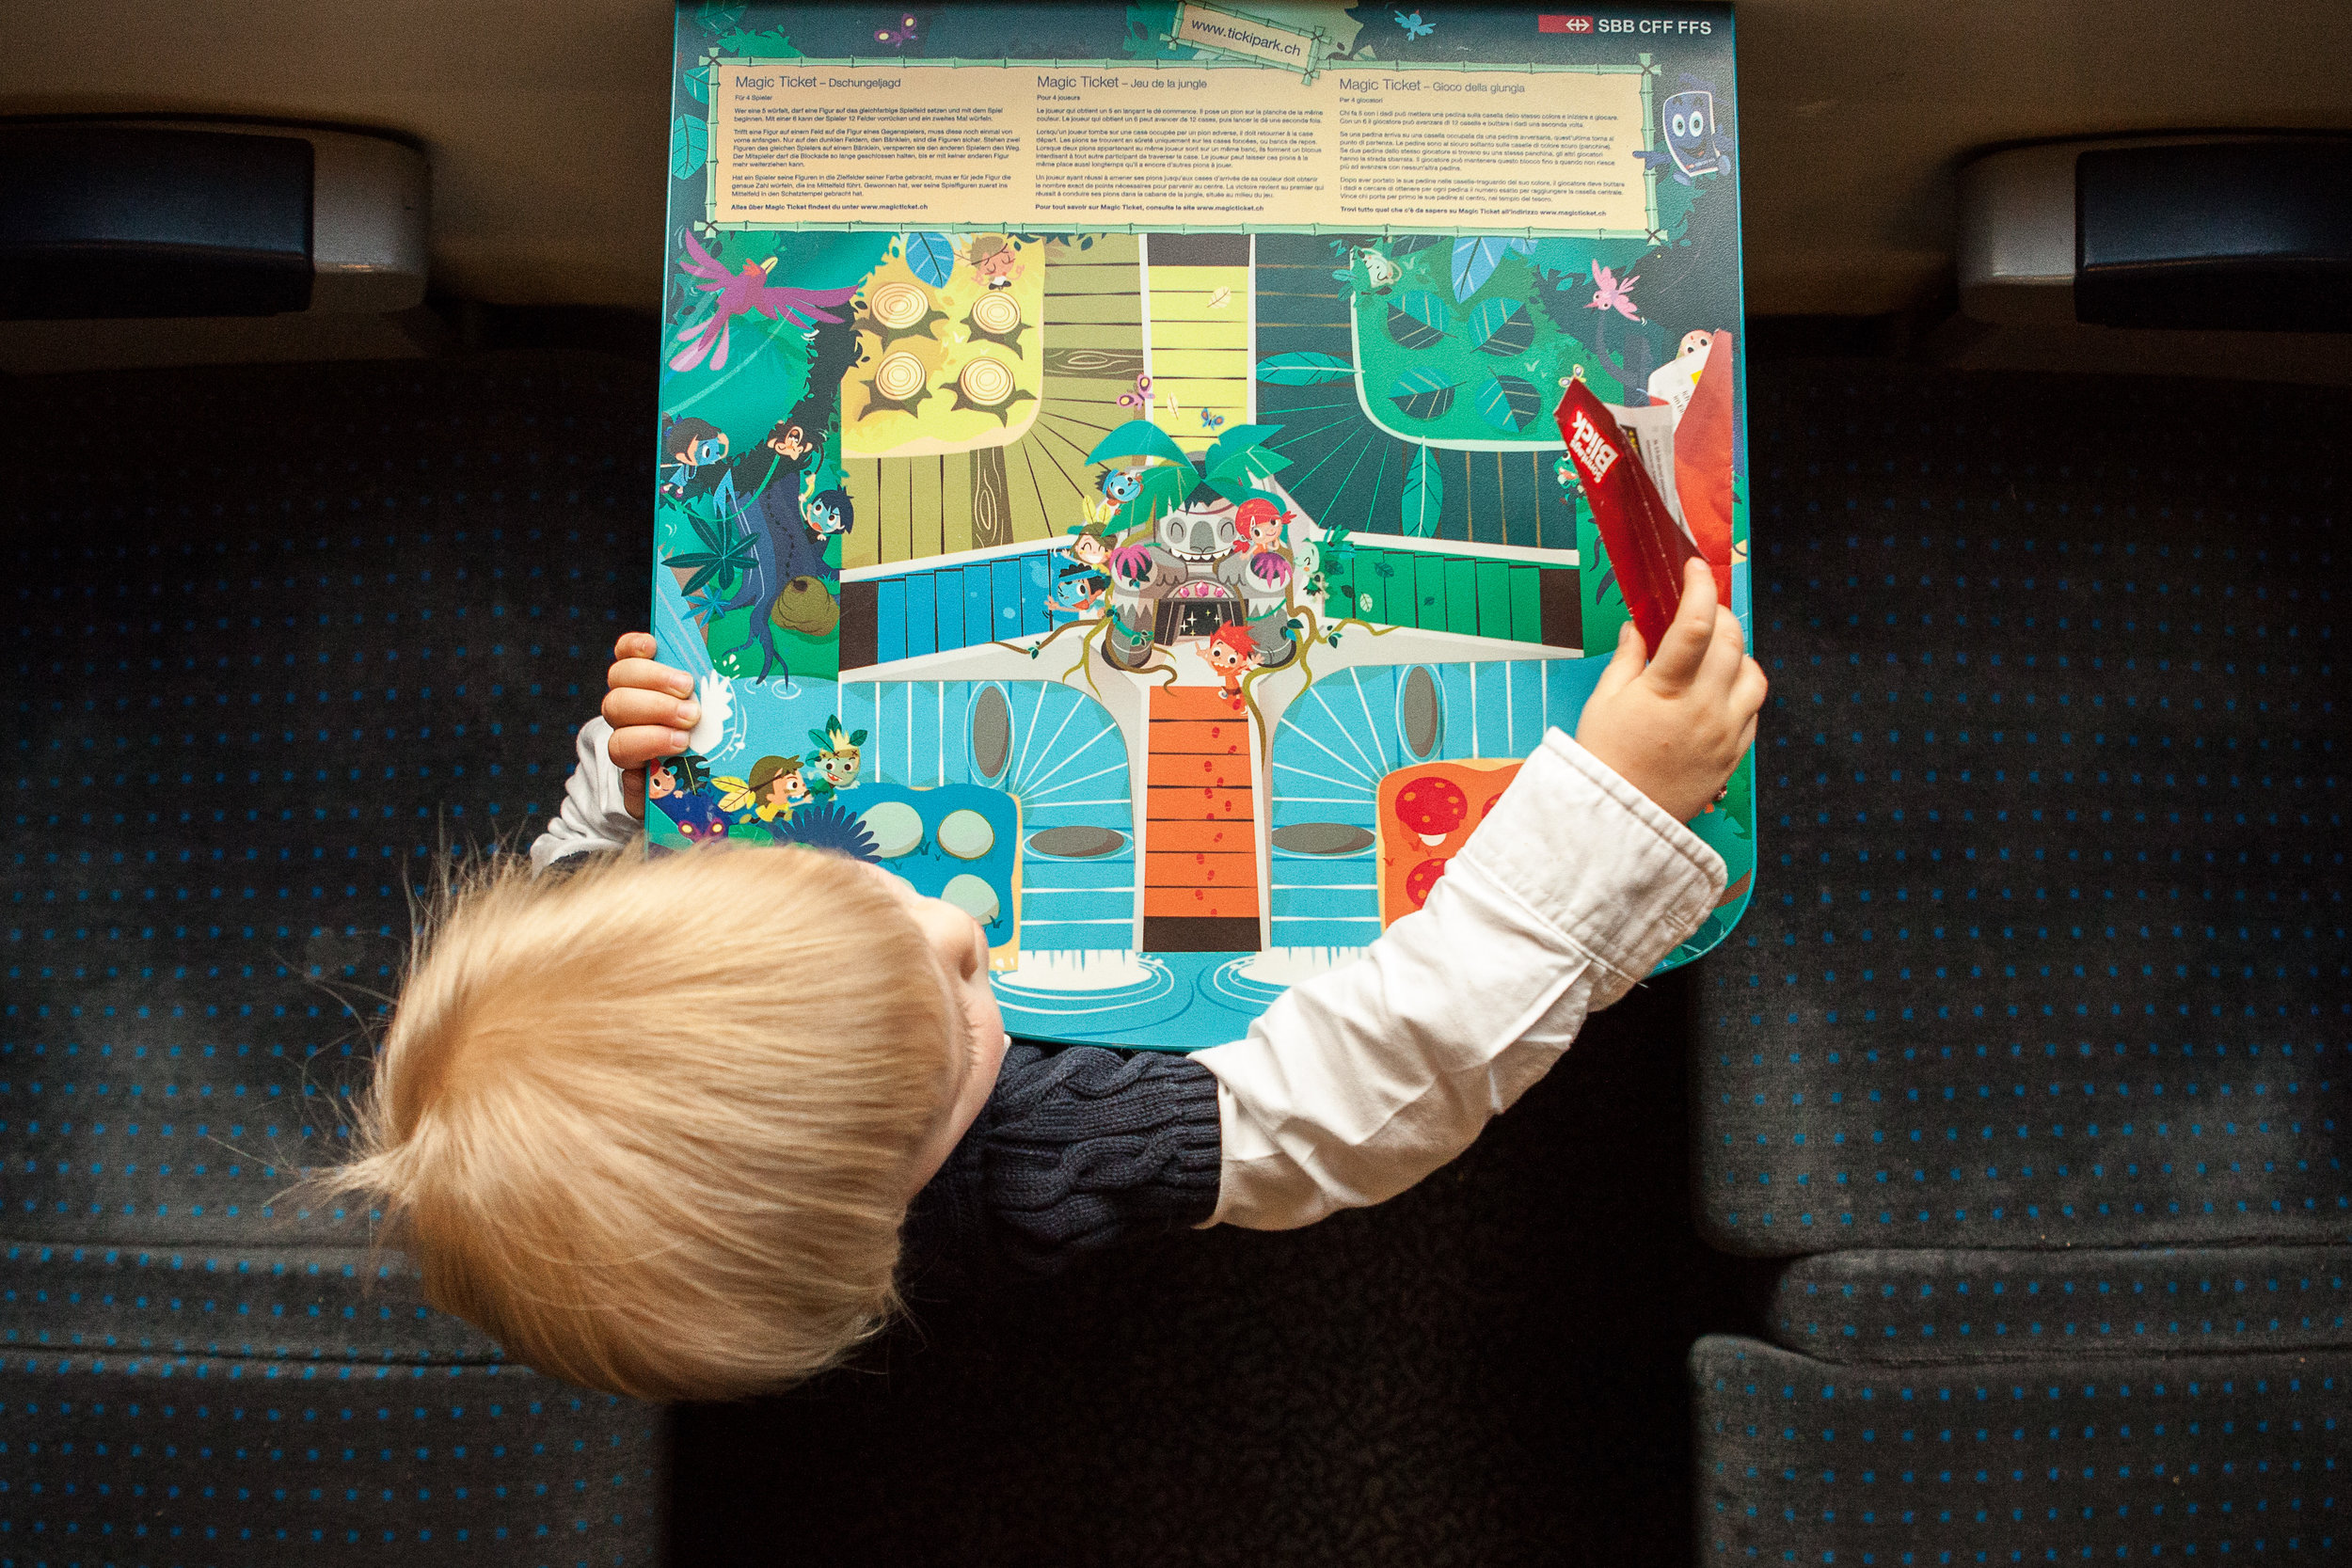 Take the train to avoid the traffic! Sit back and let someone else drive, and if you are lucky there may be a family wagon with game boards on your train.